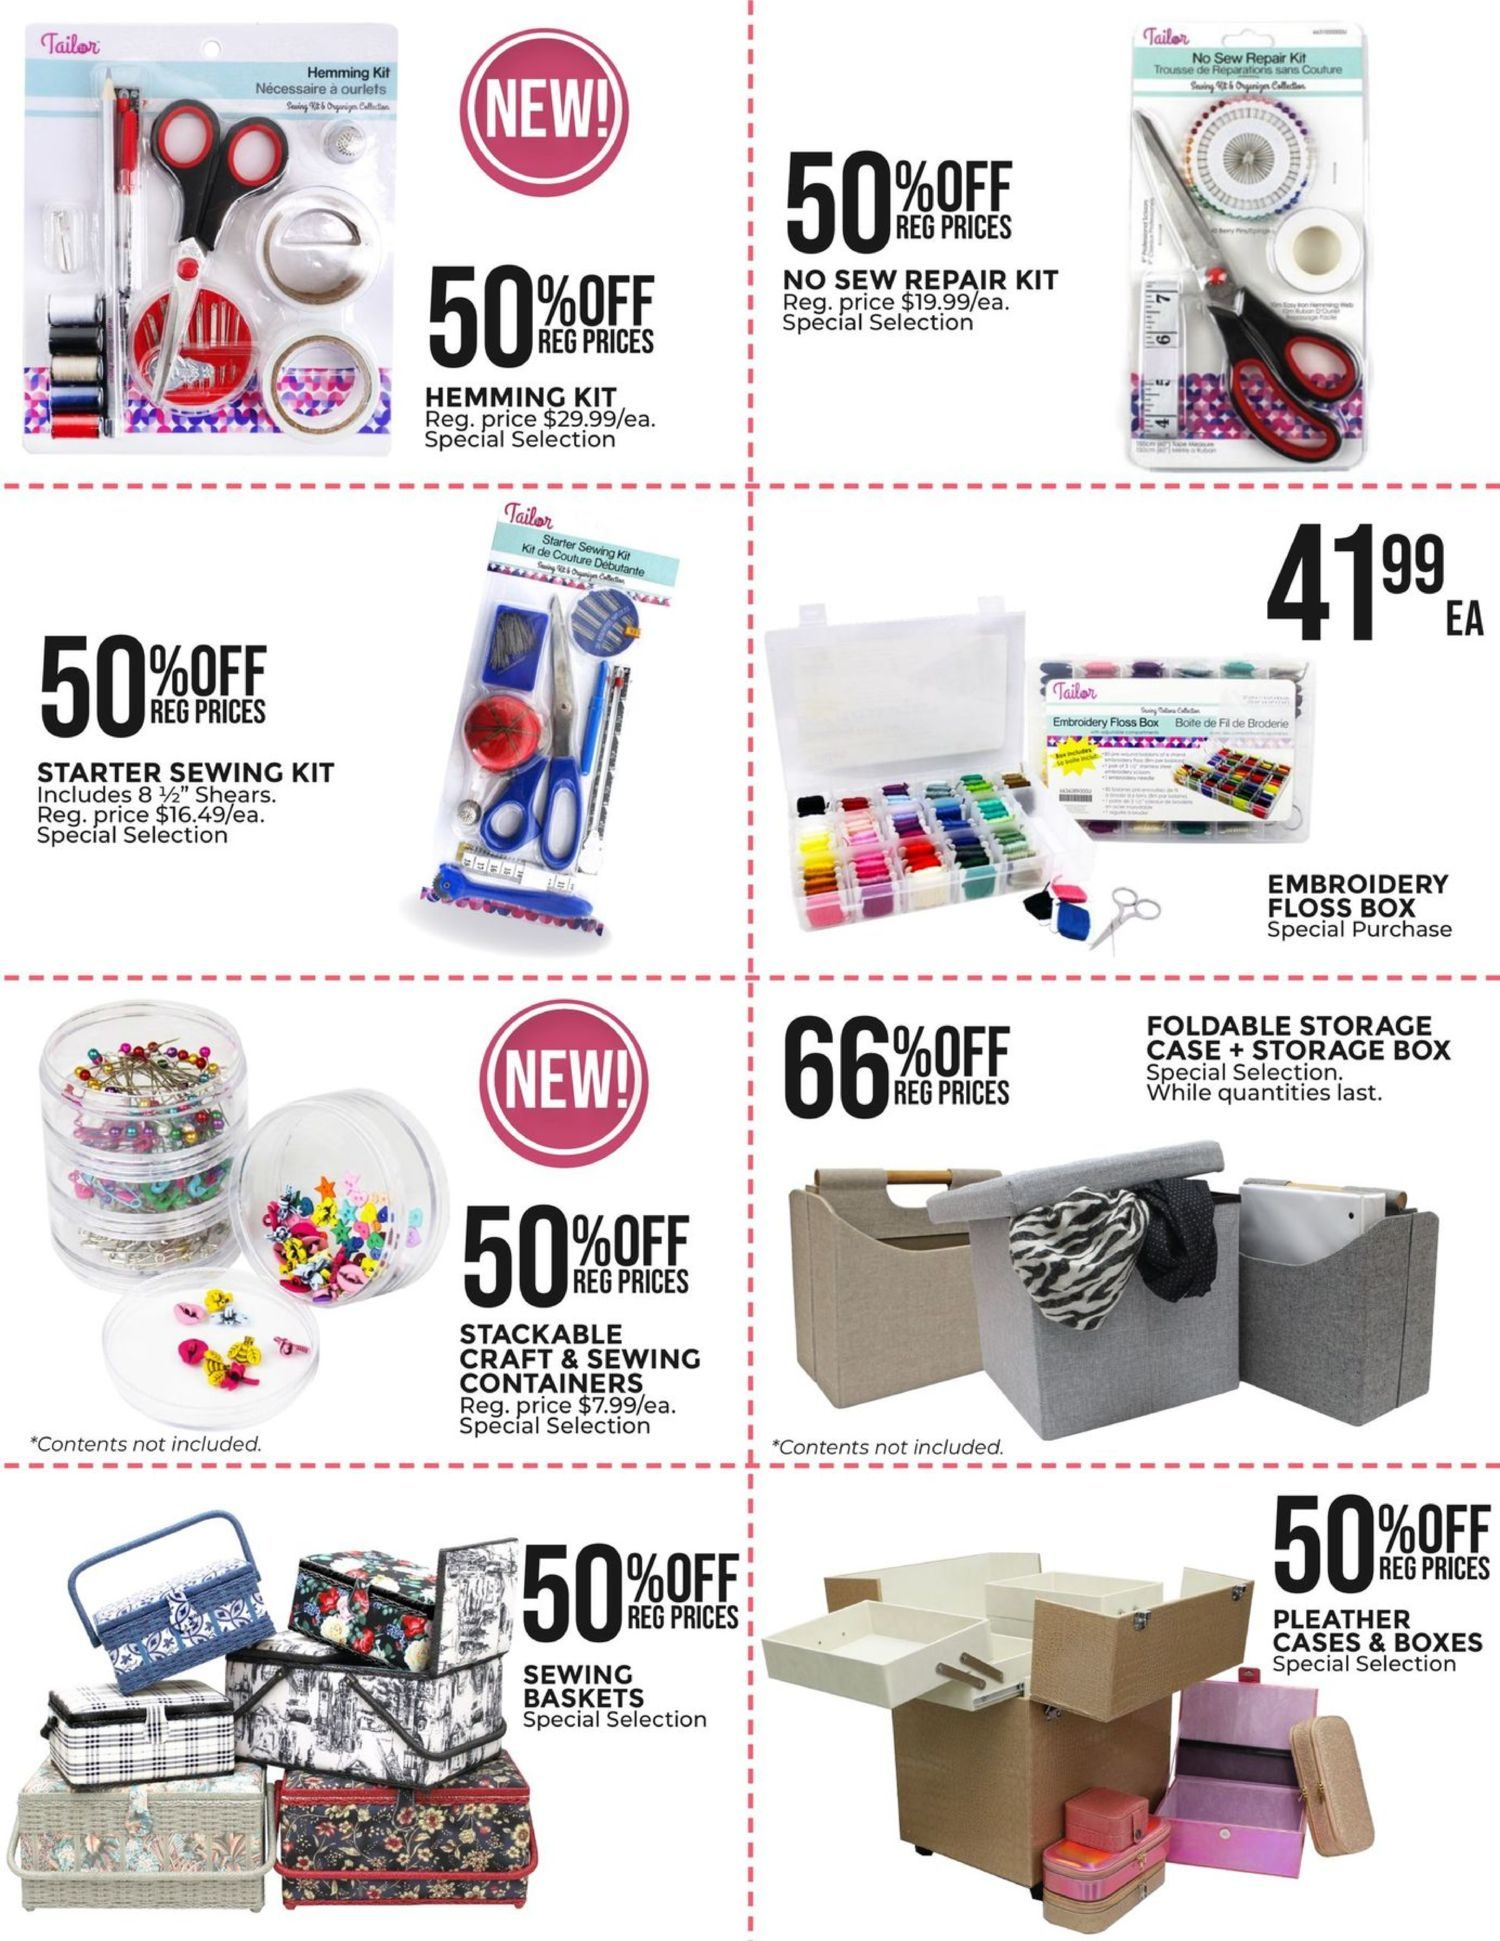 Fabricland - Monthly Offers - 53rd Birthday Sale - Page 22